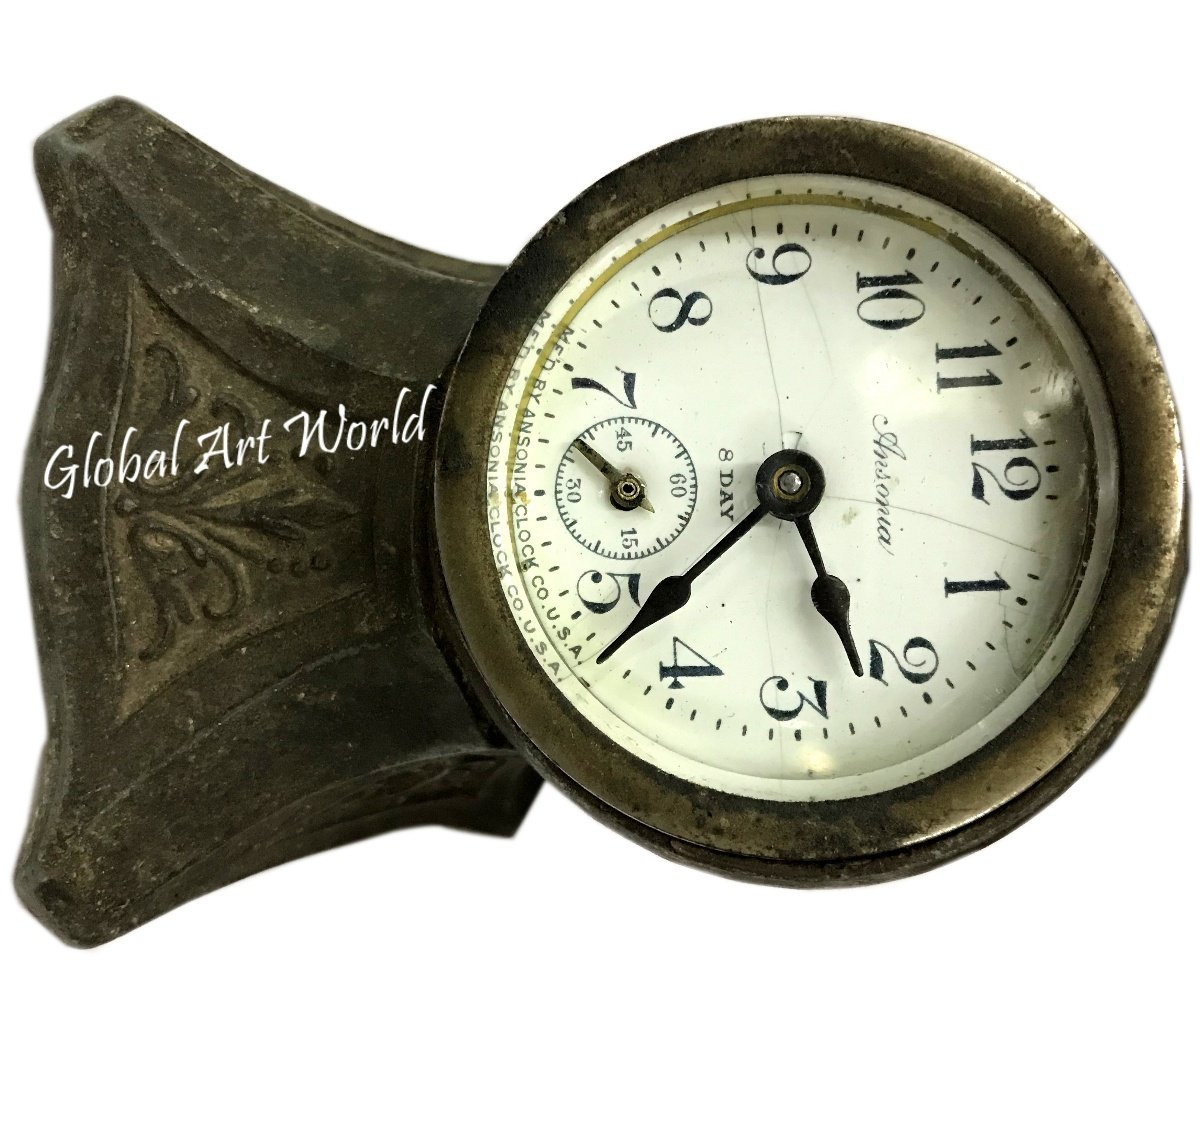 Antiques World Antique Collectors Piece Ansonia Travel Alarm Table Clock Wind Up 8 Days Working Sterling Silver Time Piece Art Deco Case AWUSAHB 0263